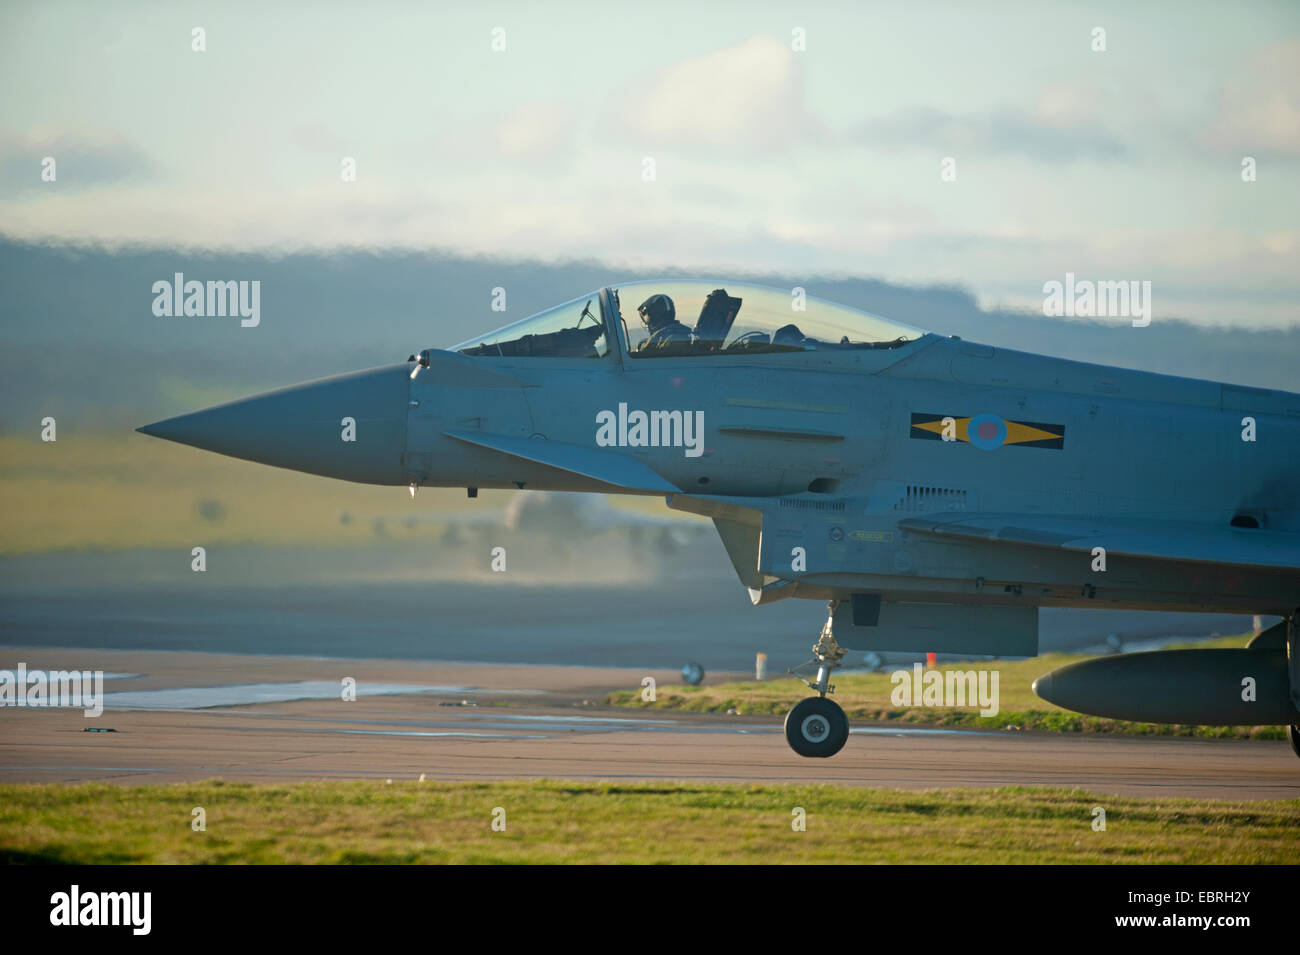 Eurofighter Typhoon FRG4 Military Jet Fighter on taxiway preparing to depart RAF Lossiemouth air base. SCO 9277. - Stock Image